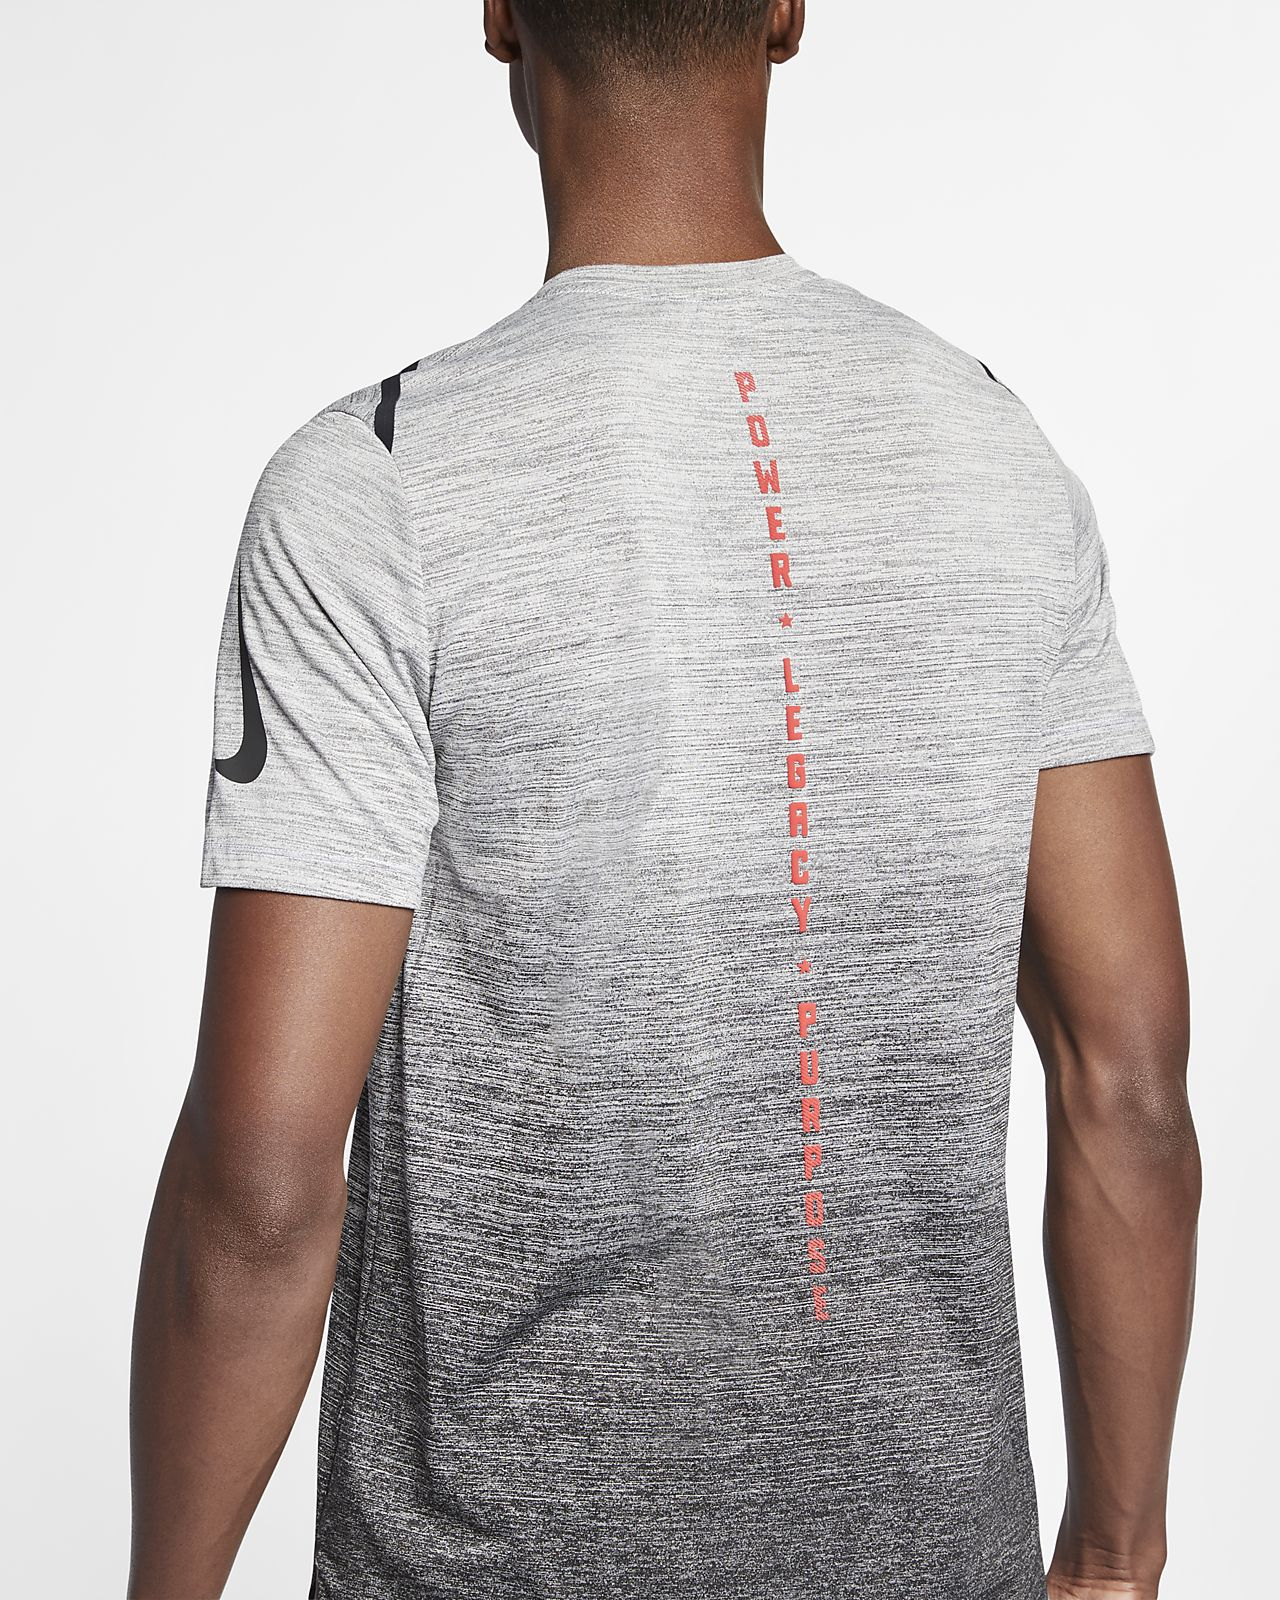 9ccab7d4 Nike Dri-FIT Adonis Creed Men's Short-Sleeve Training Top. Nike.com